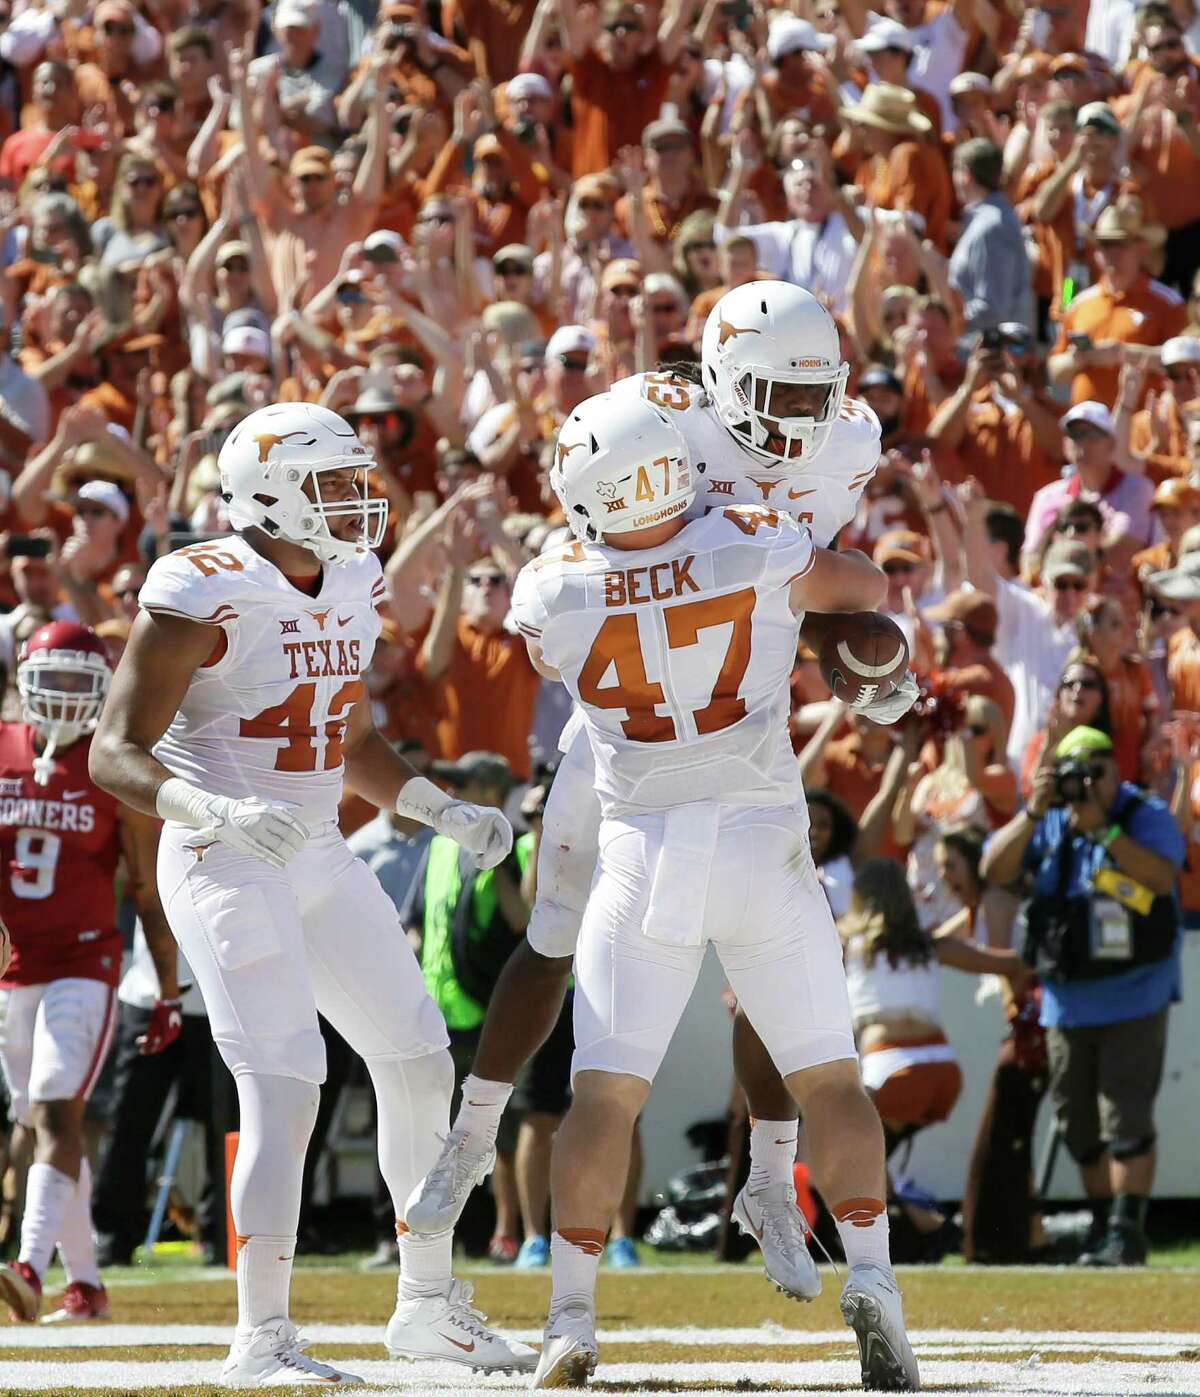 Texas running back D'Onta Foreman (33) celebrates running for a touchdown with teammates Andrew Beck (47) and Caleb Bluiett (42) during the first half of an NCAA college football game against Oklahoma in Dallas Saturday, Oct. 8, 2016. (AP Photo/LM Otero)